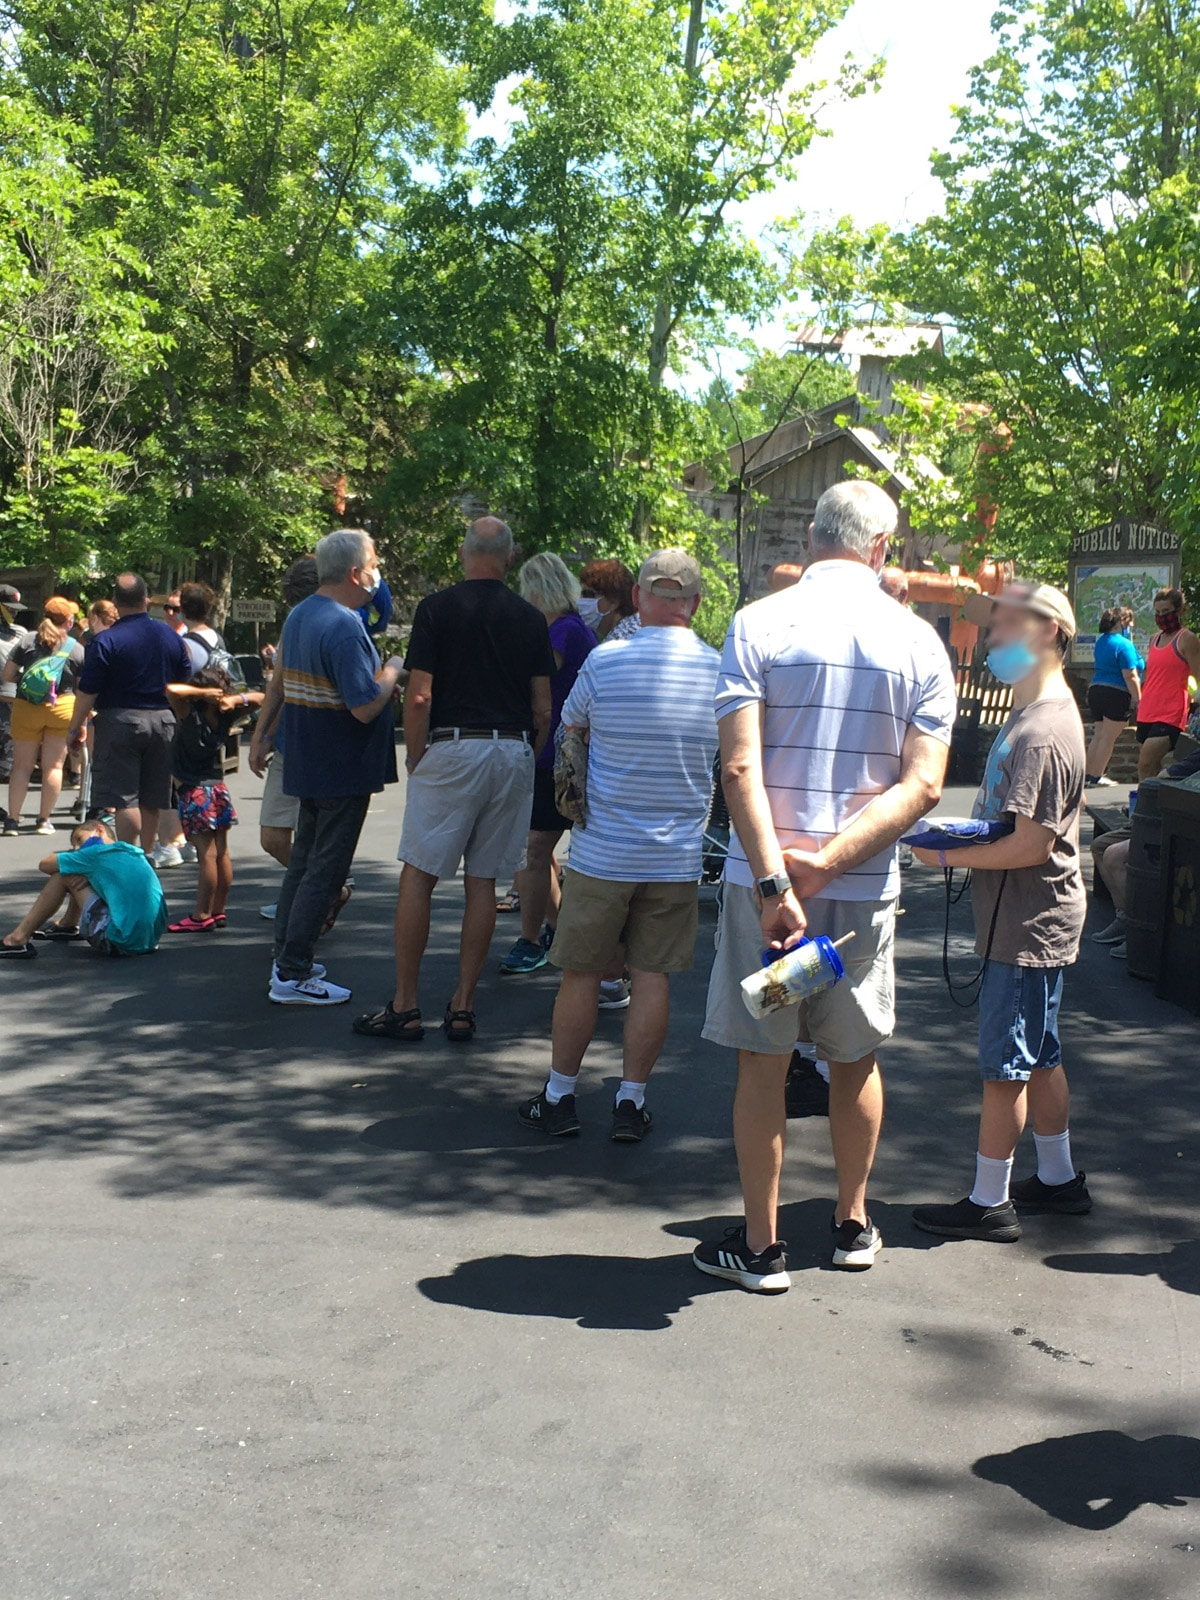 Long impromptu lines at Silver Dollar City